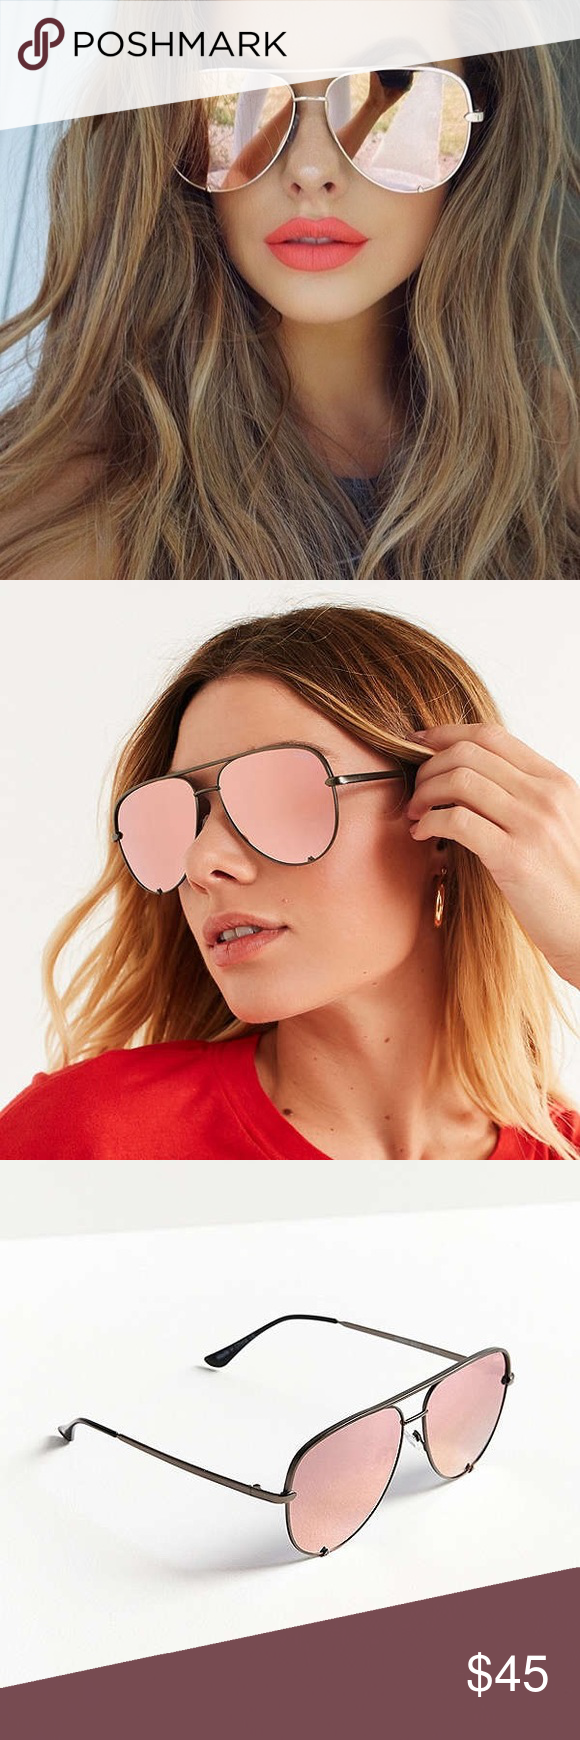 d7bf70df4d Quay x Desi High Key Sunglasses Like new. Rose color Up the glam factor  with these seriously sleek aviator sunglasses from Quay Australia s  collaboration ...